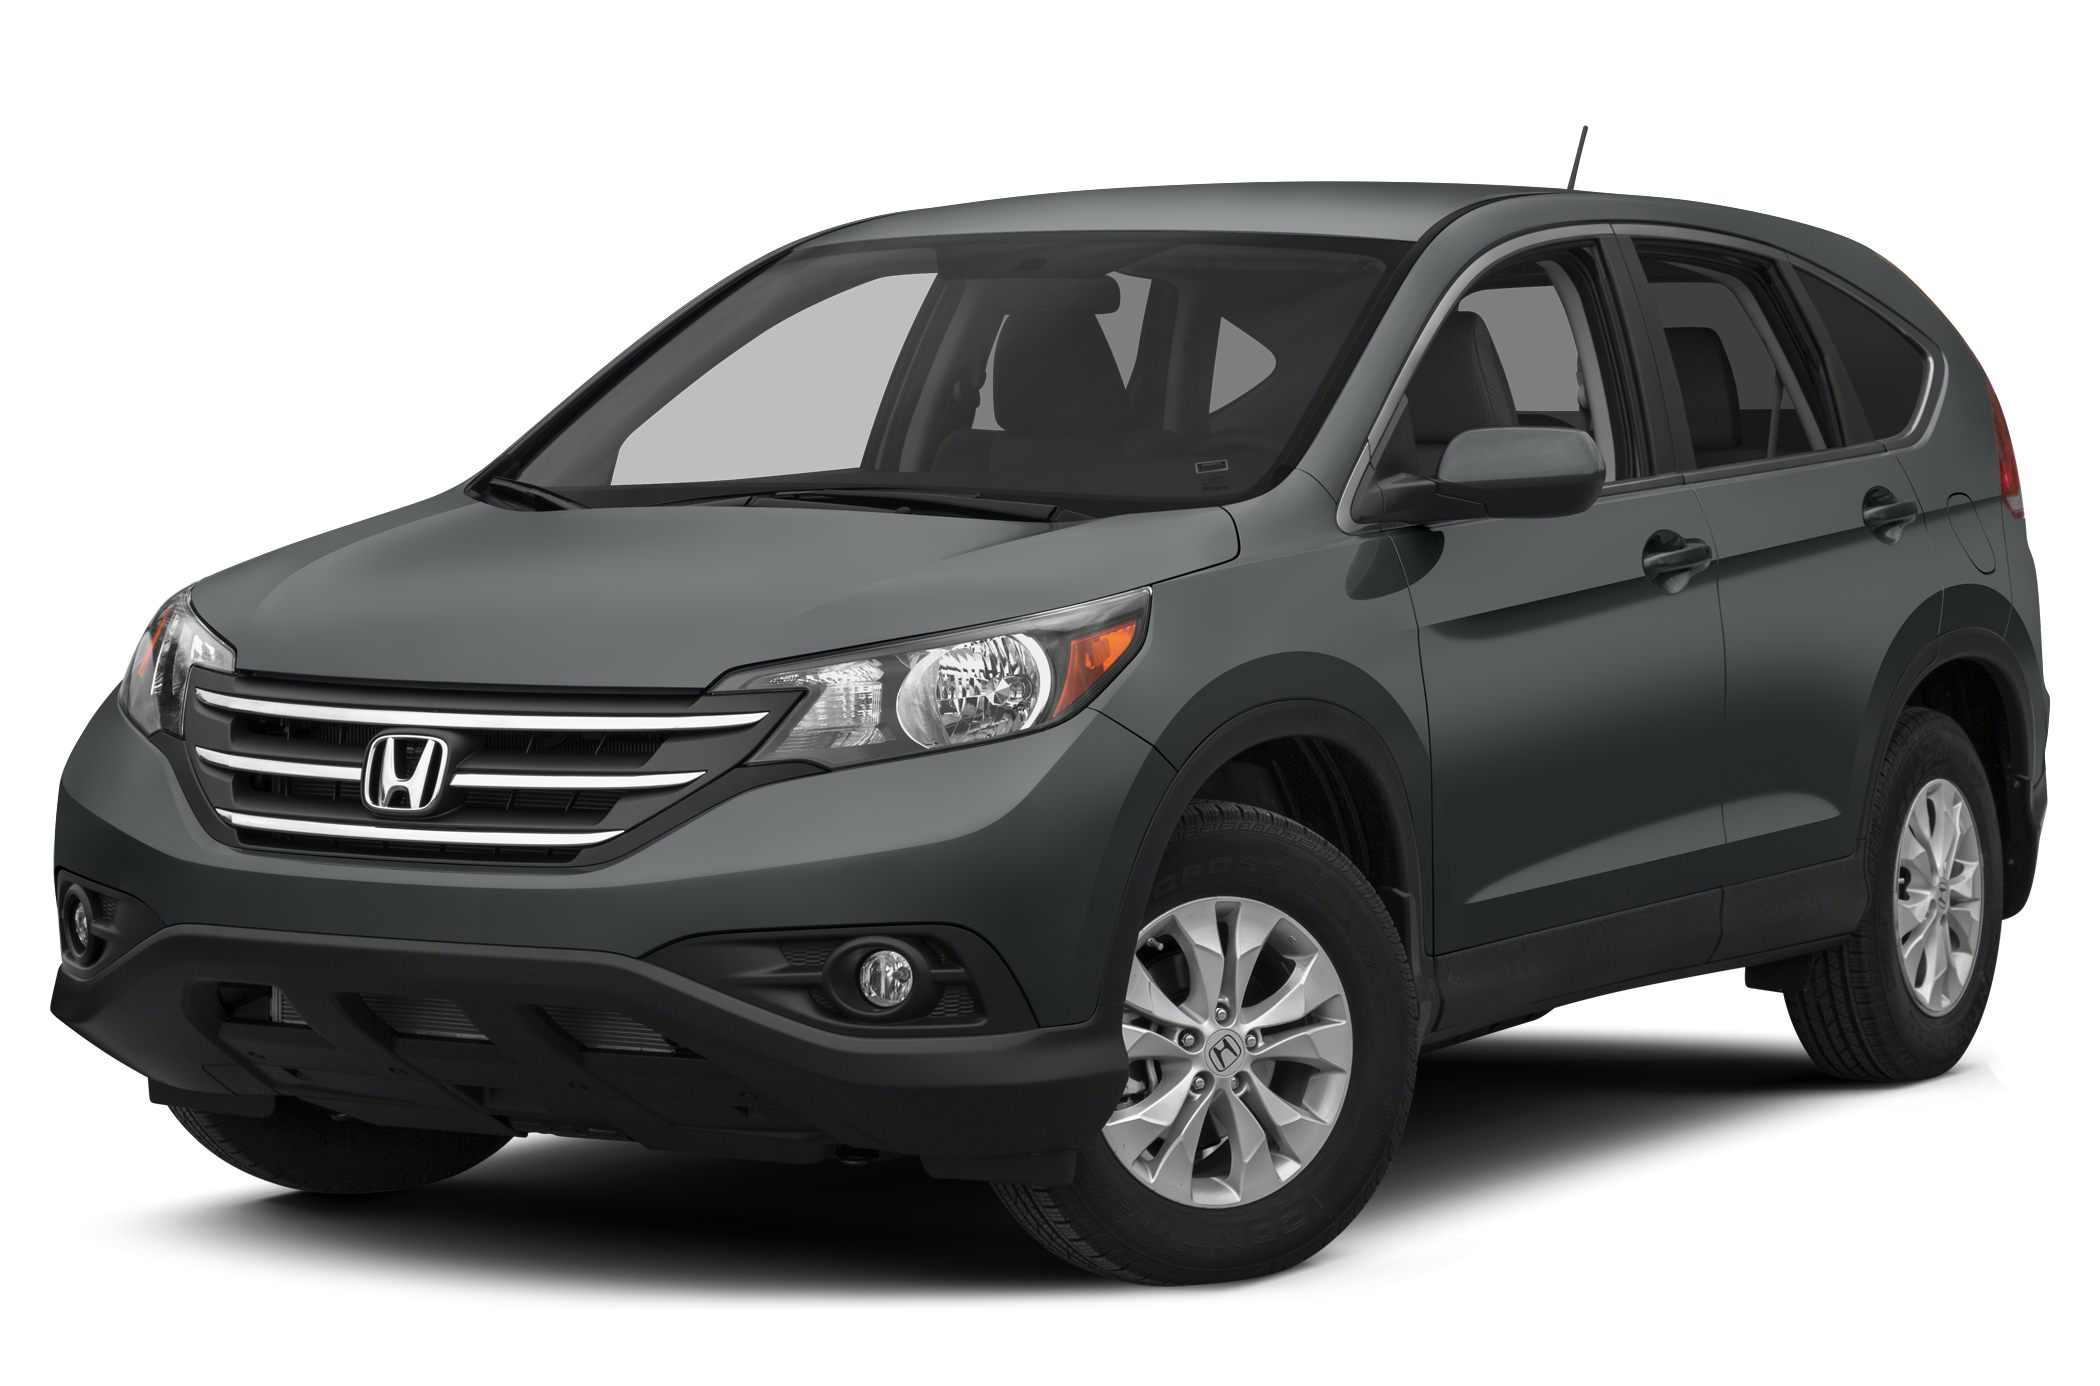 2014 Honda CR-V EX Honda Certified Certified Smooth runner Comfortable seats are behind you all